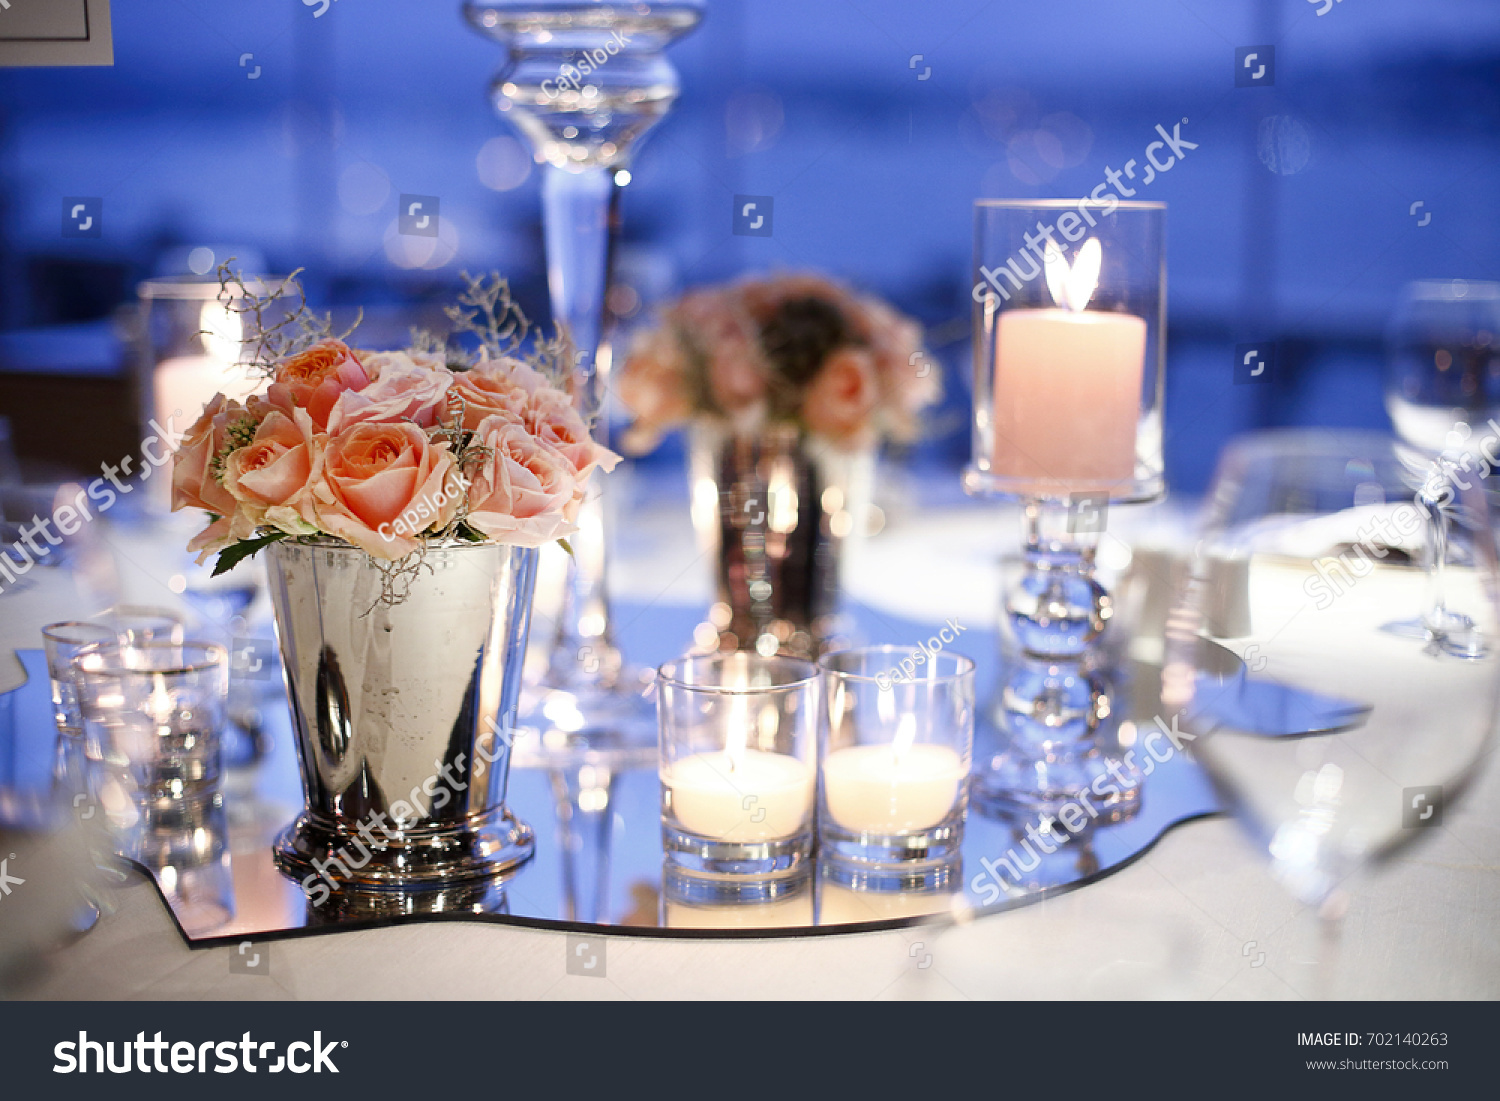 Wedding Guest Decorations